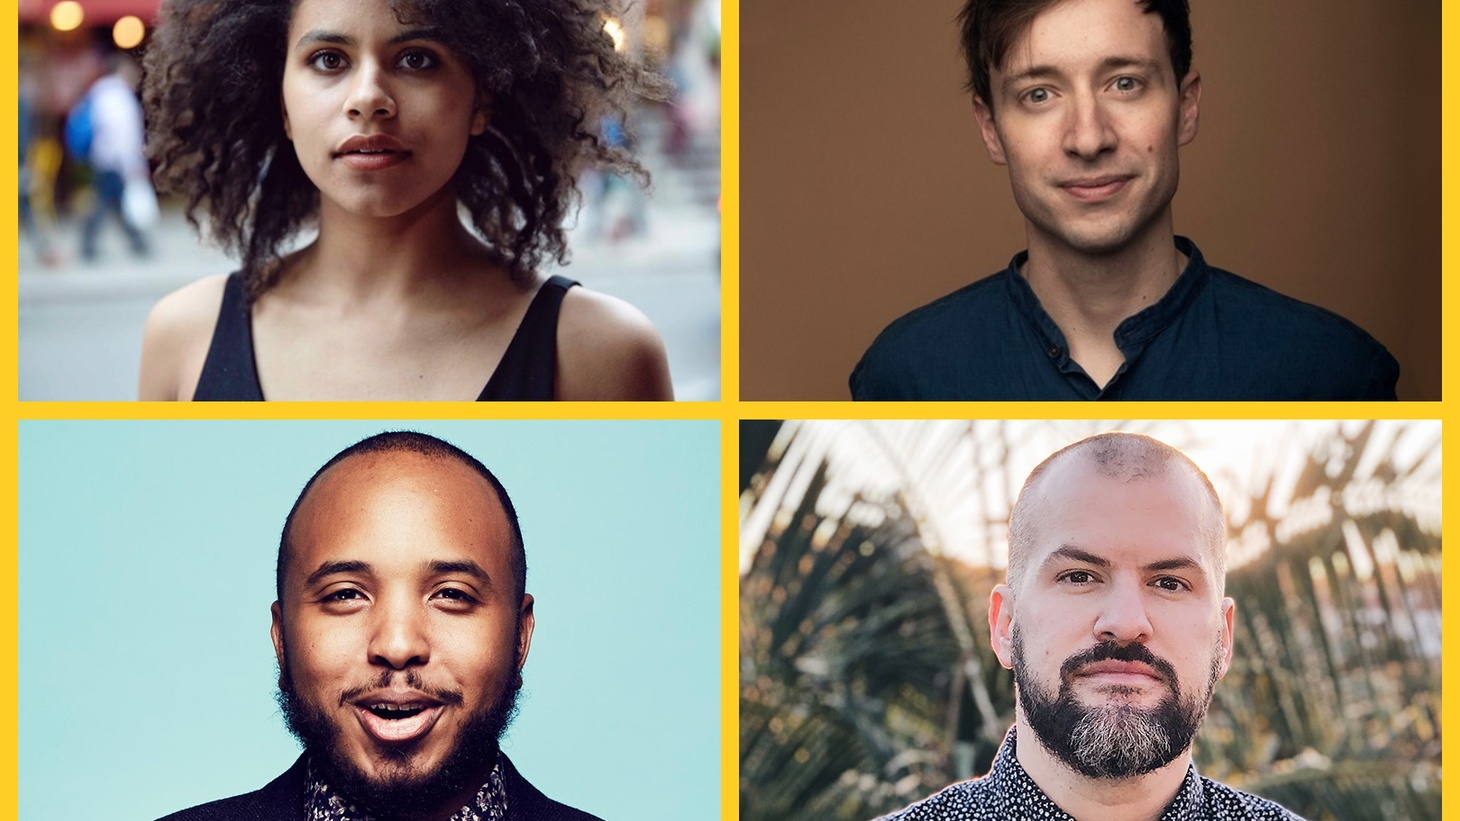 Zazie Beetz is back, with her writer-actor boyfriend David Rysdahl. Justin also brought his boyfriend, Rick Proctor, into the studio. Both baes are white. We discuss the deep personal growth and public perils of our interracial love.